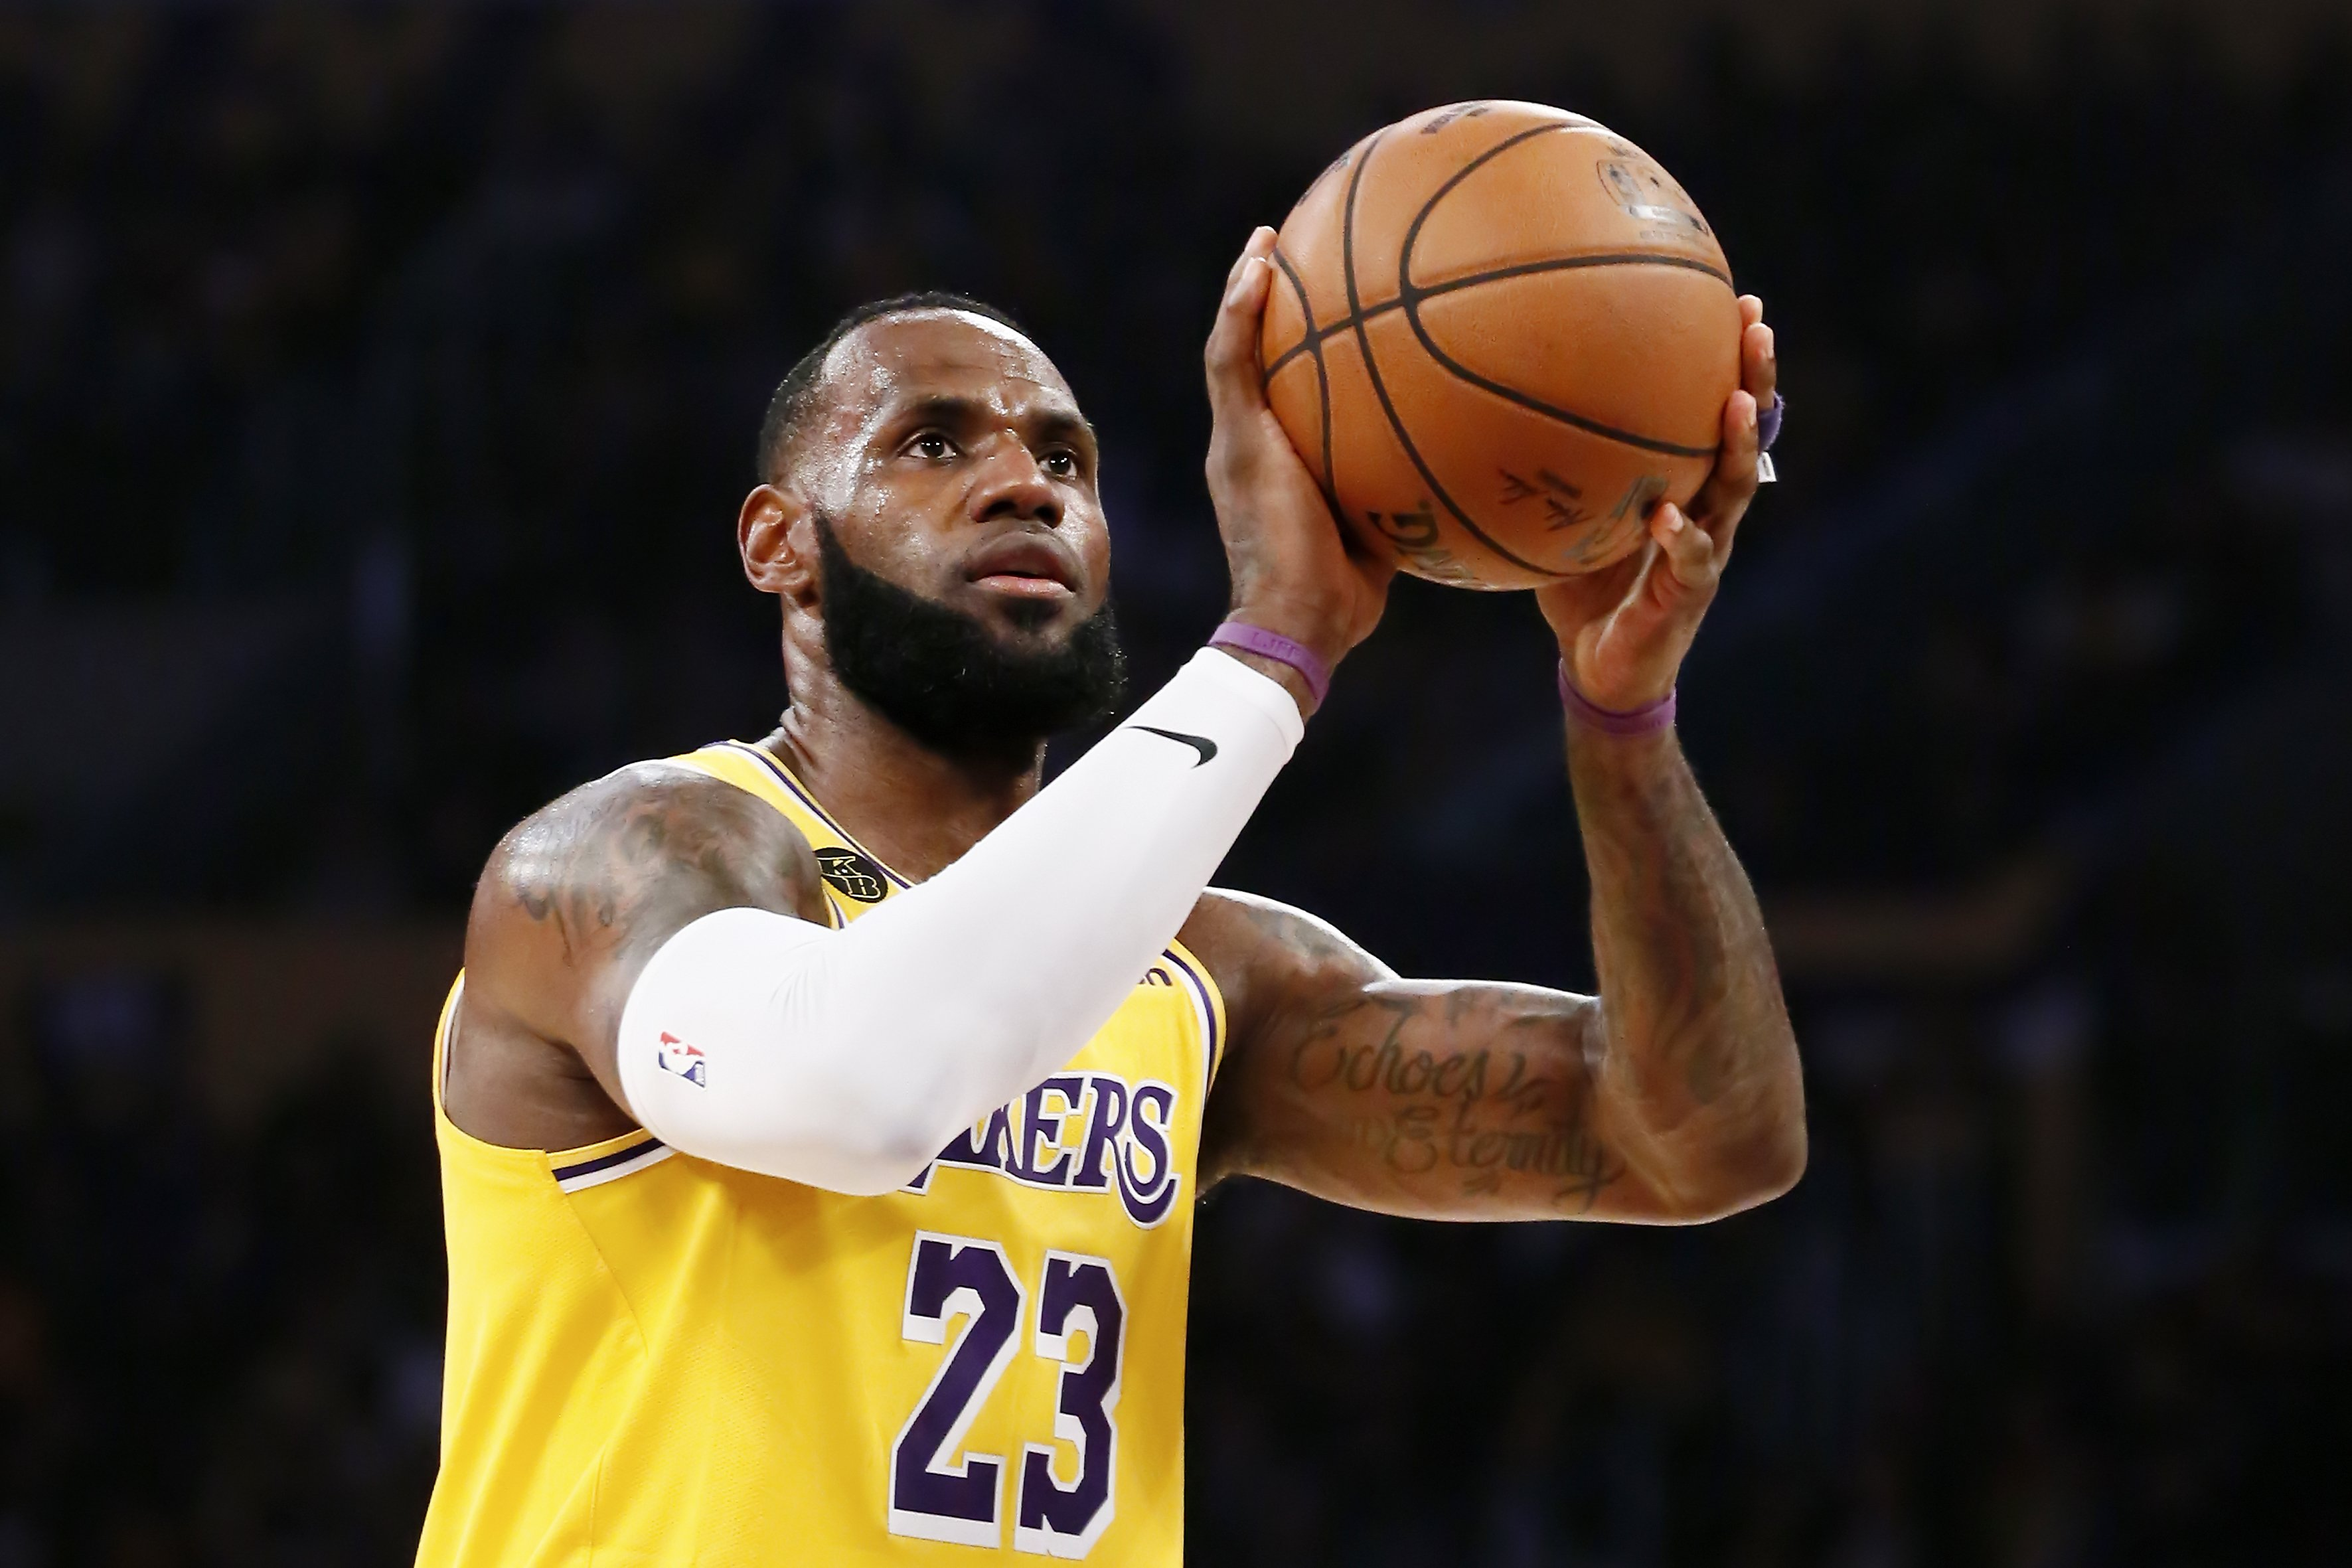 LeBron James during a game against the Brooklyn Nets at the Staples Center on March 10, 2020 in Los Angeles. | Source: Getty Images